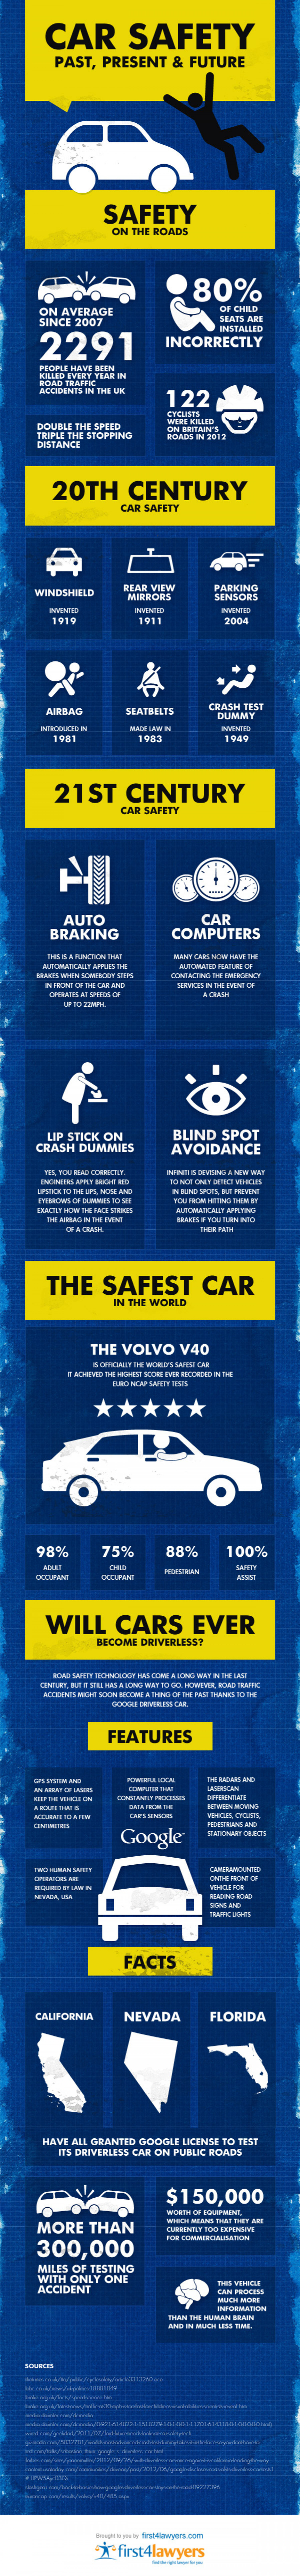 Car safety, Past, Present & Future  Infographic